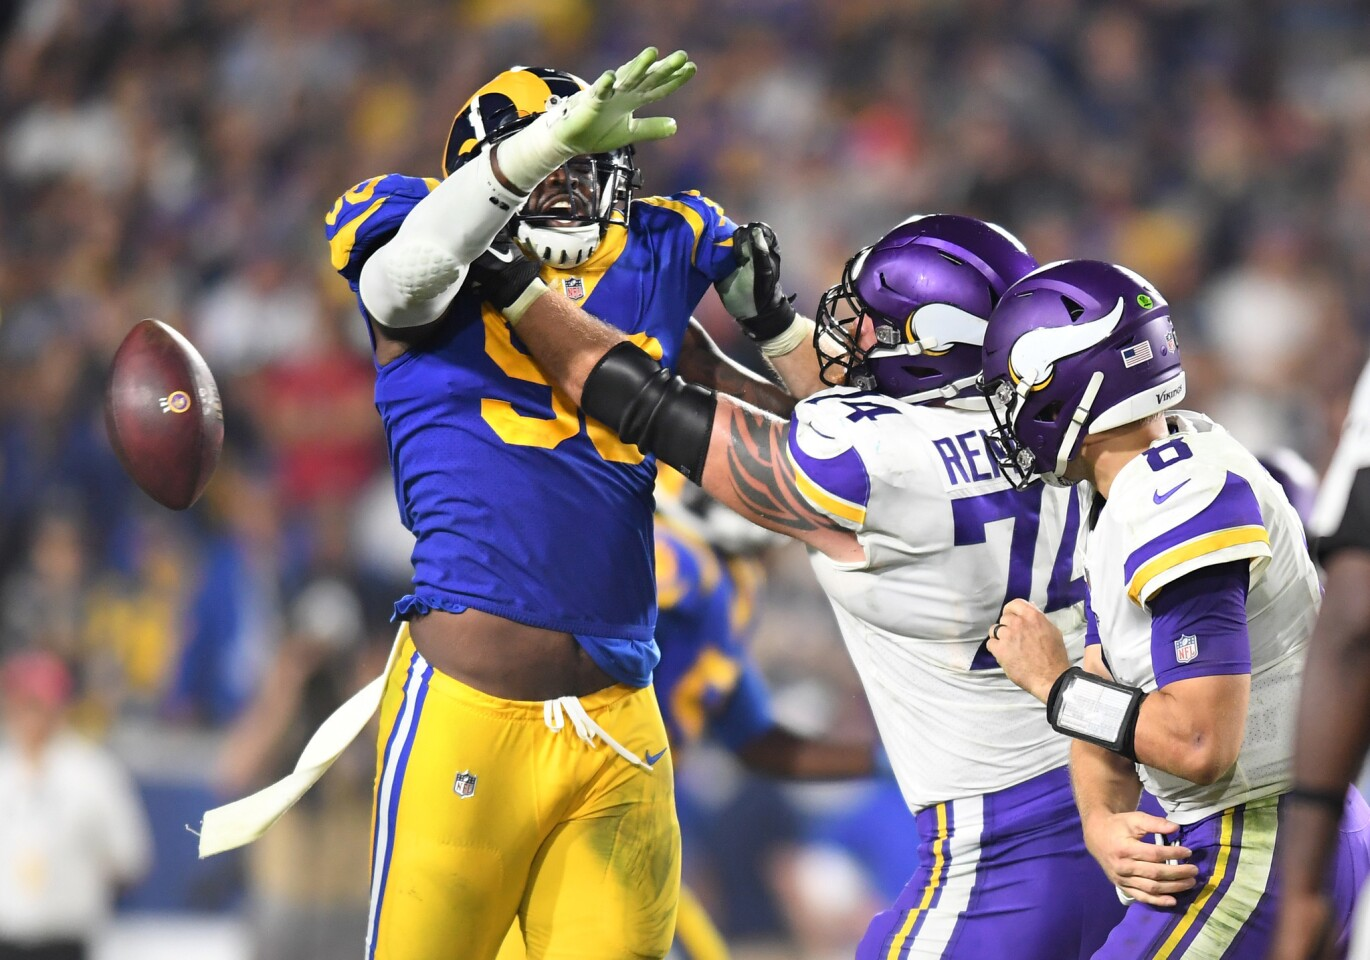 Rams defensive lineman Michael Brockers forces Vikings quarterback Kirk Cousins into a fumble late in the 4th quarter. The Rams recovered to preserve the win.